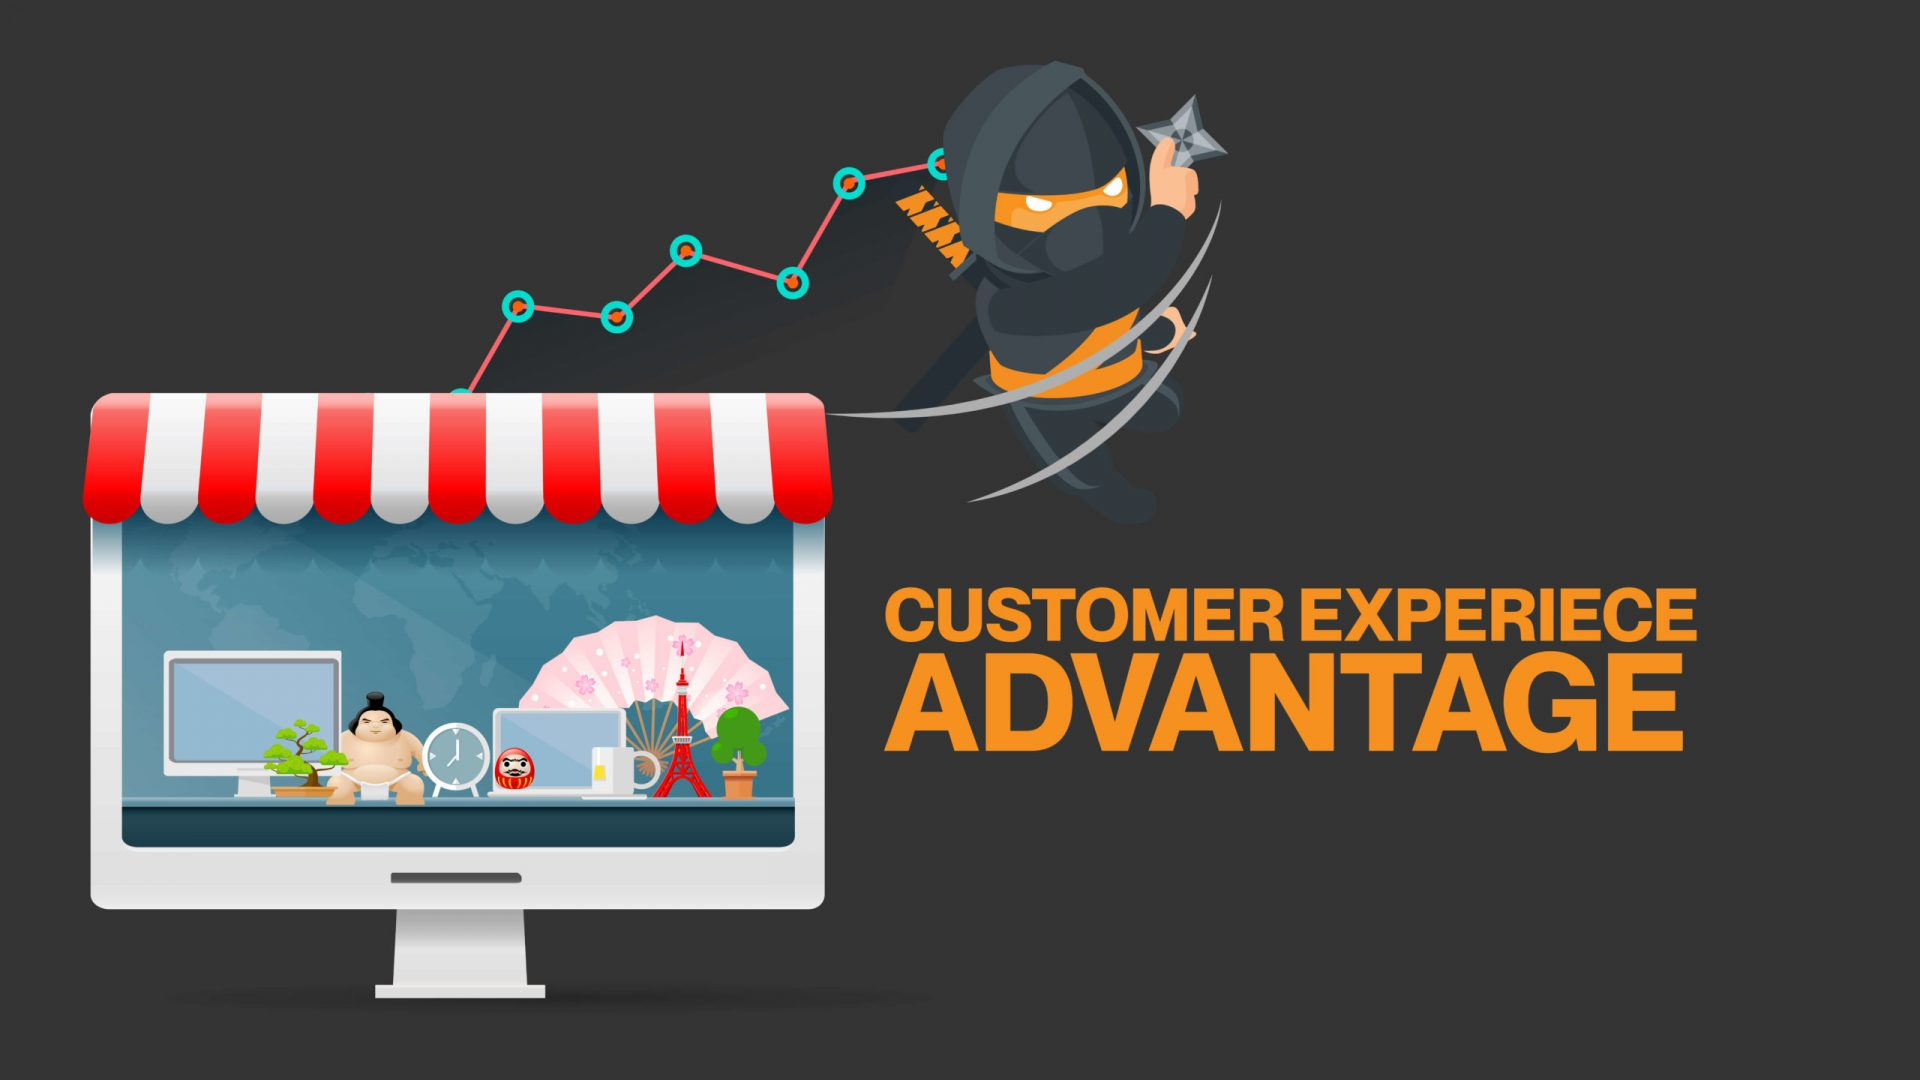 Digital Kungfu - Turn customer experience into a competitive advantage